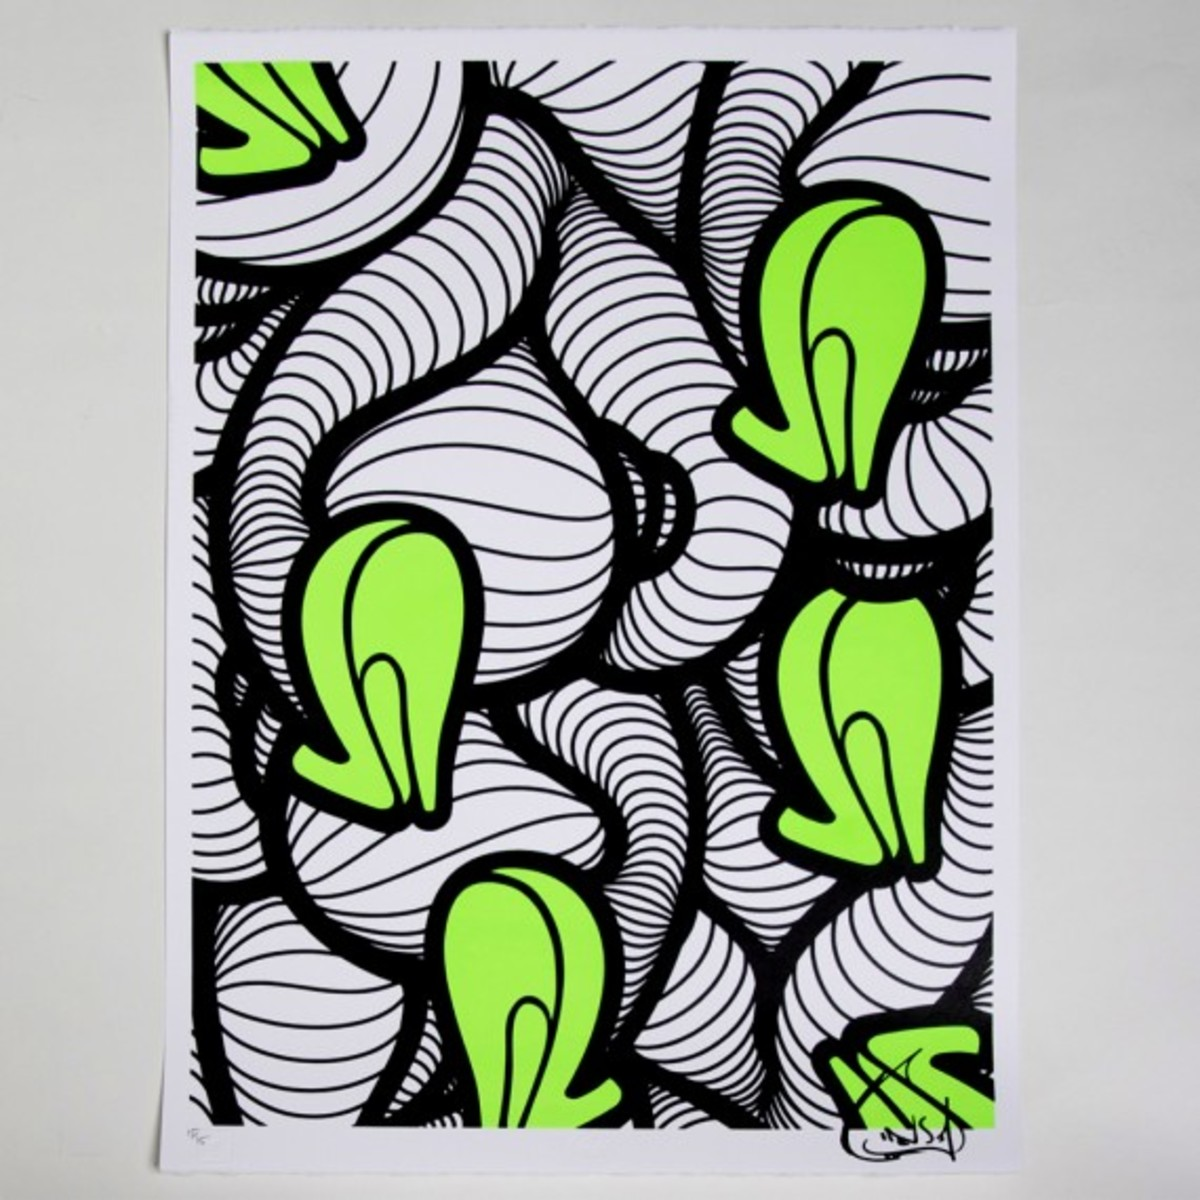 sf-special-edition-prints--neon-green-classic